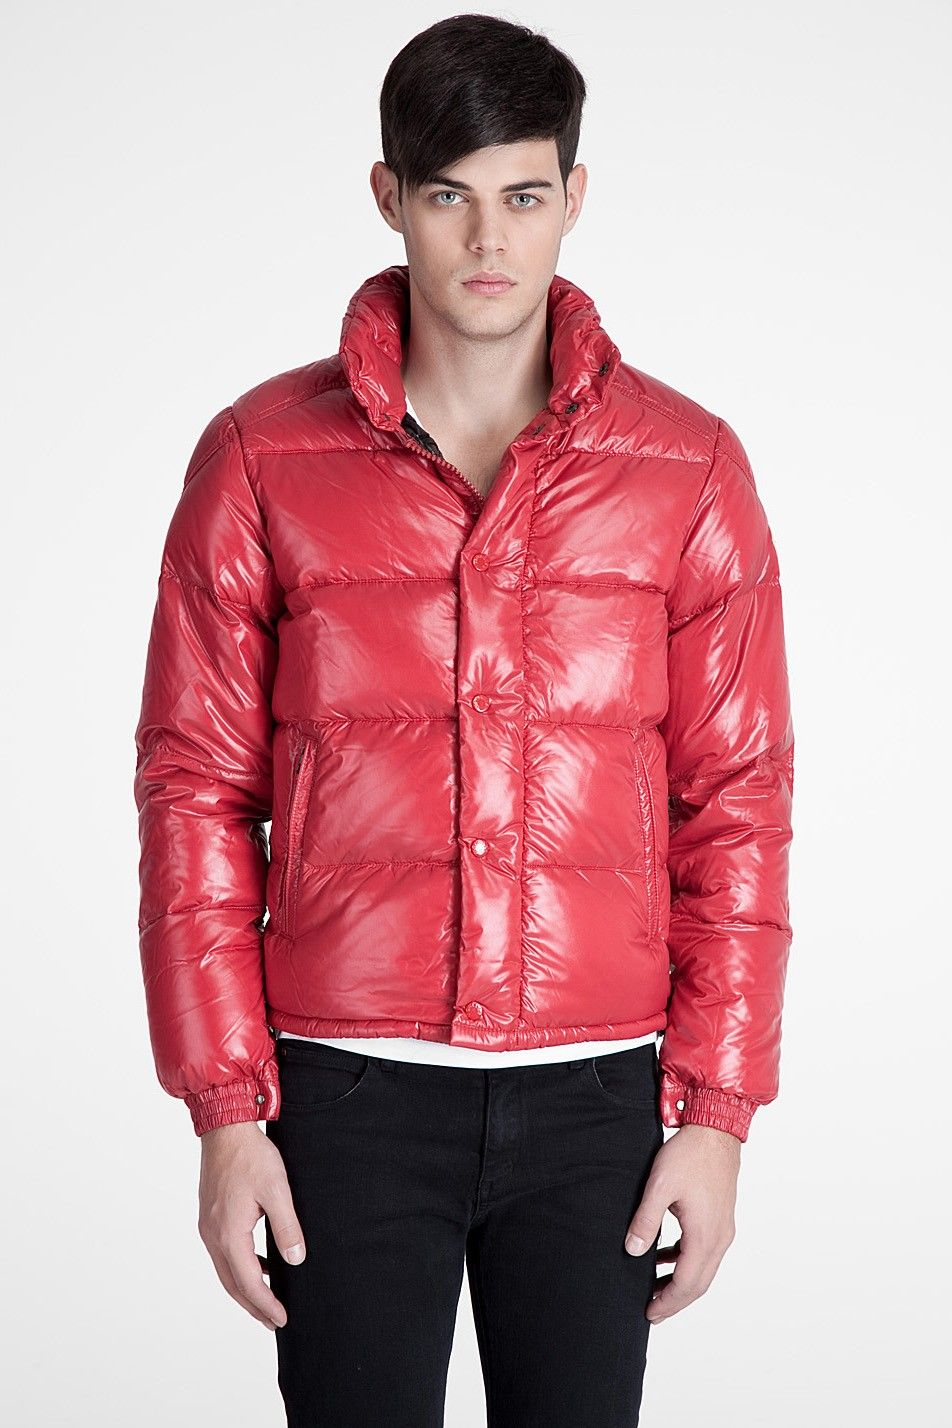 Moncler Men's Jackets Everest Down in Red moncler coats